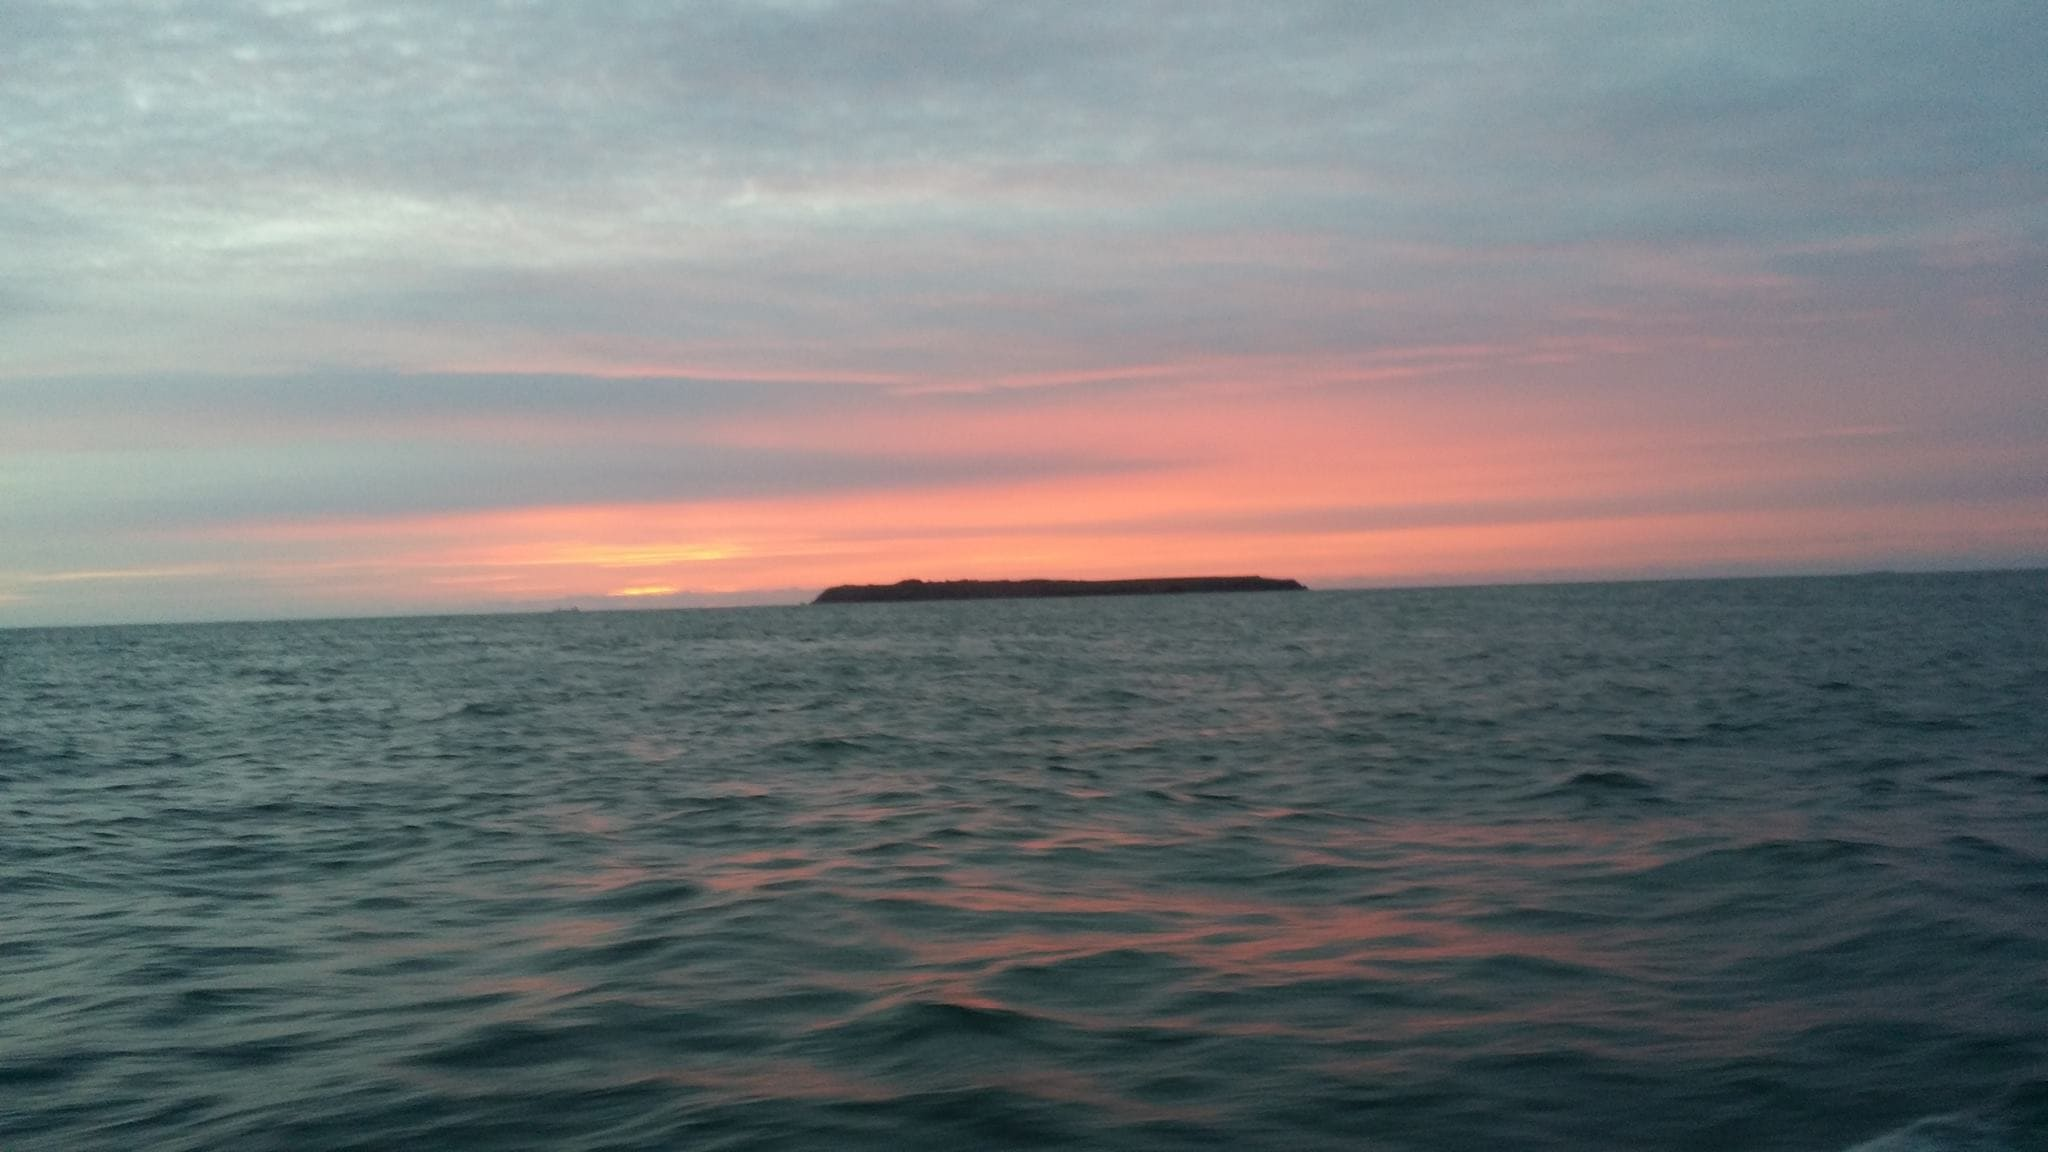 and of course the Pembrokeshire sunsets as they head back in to port